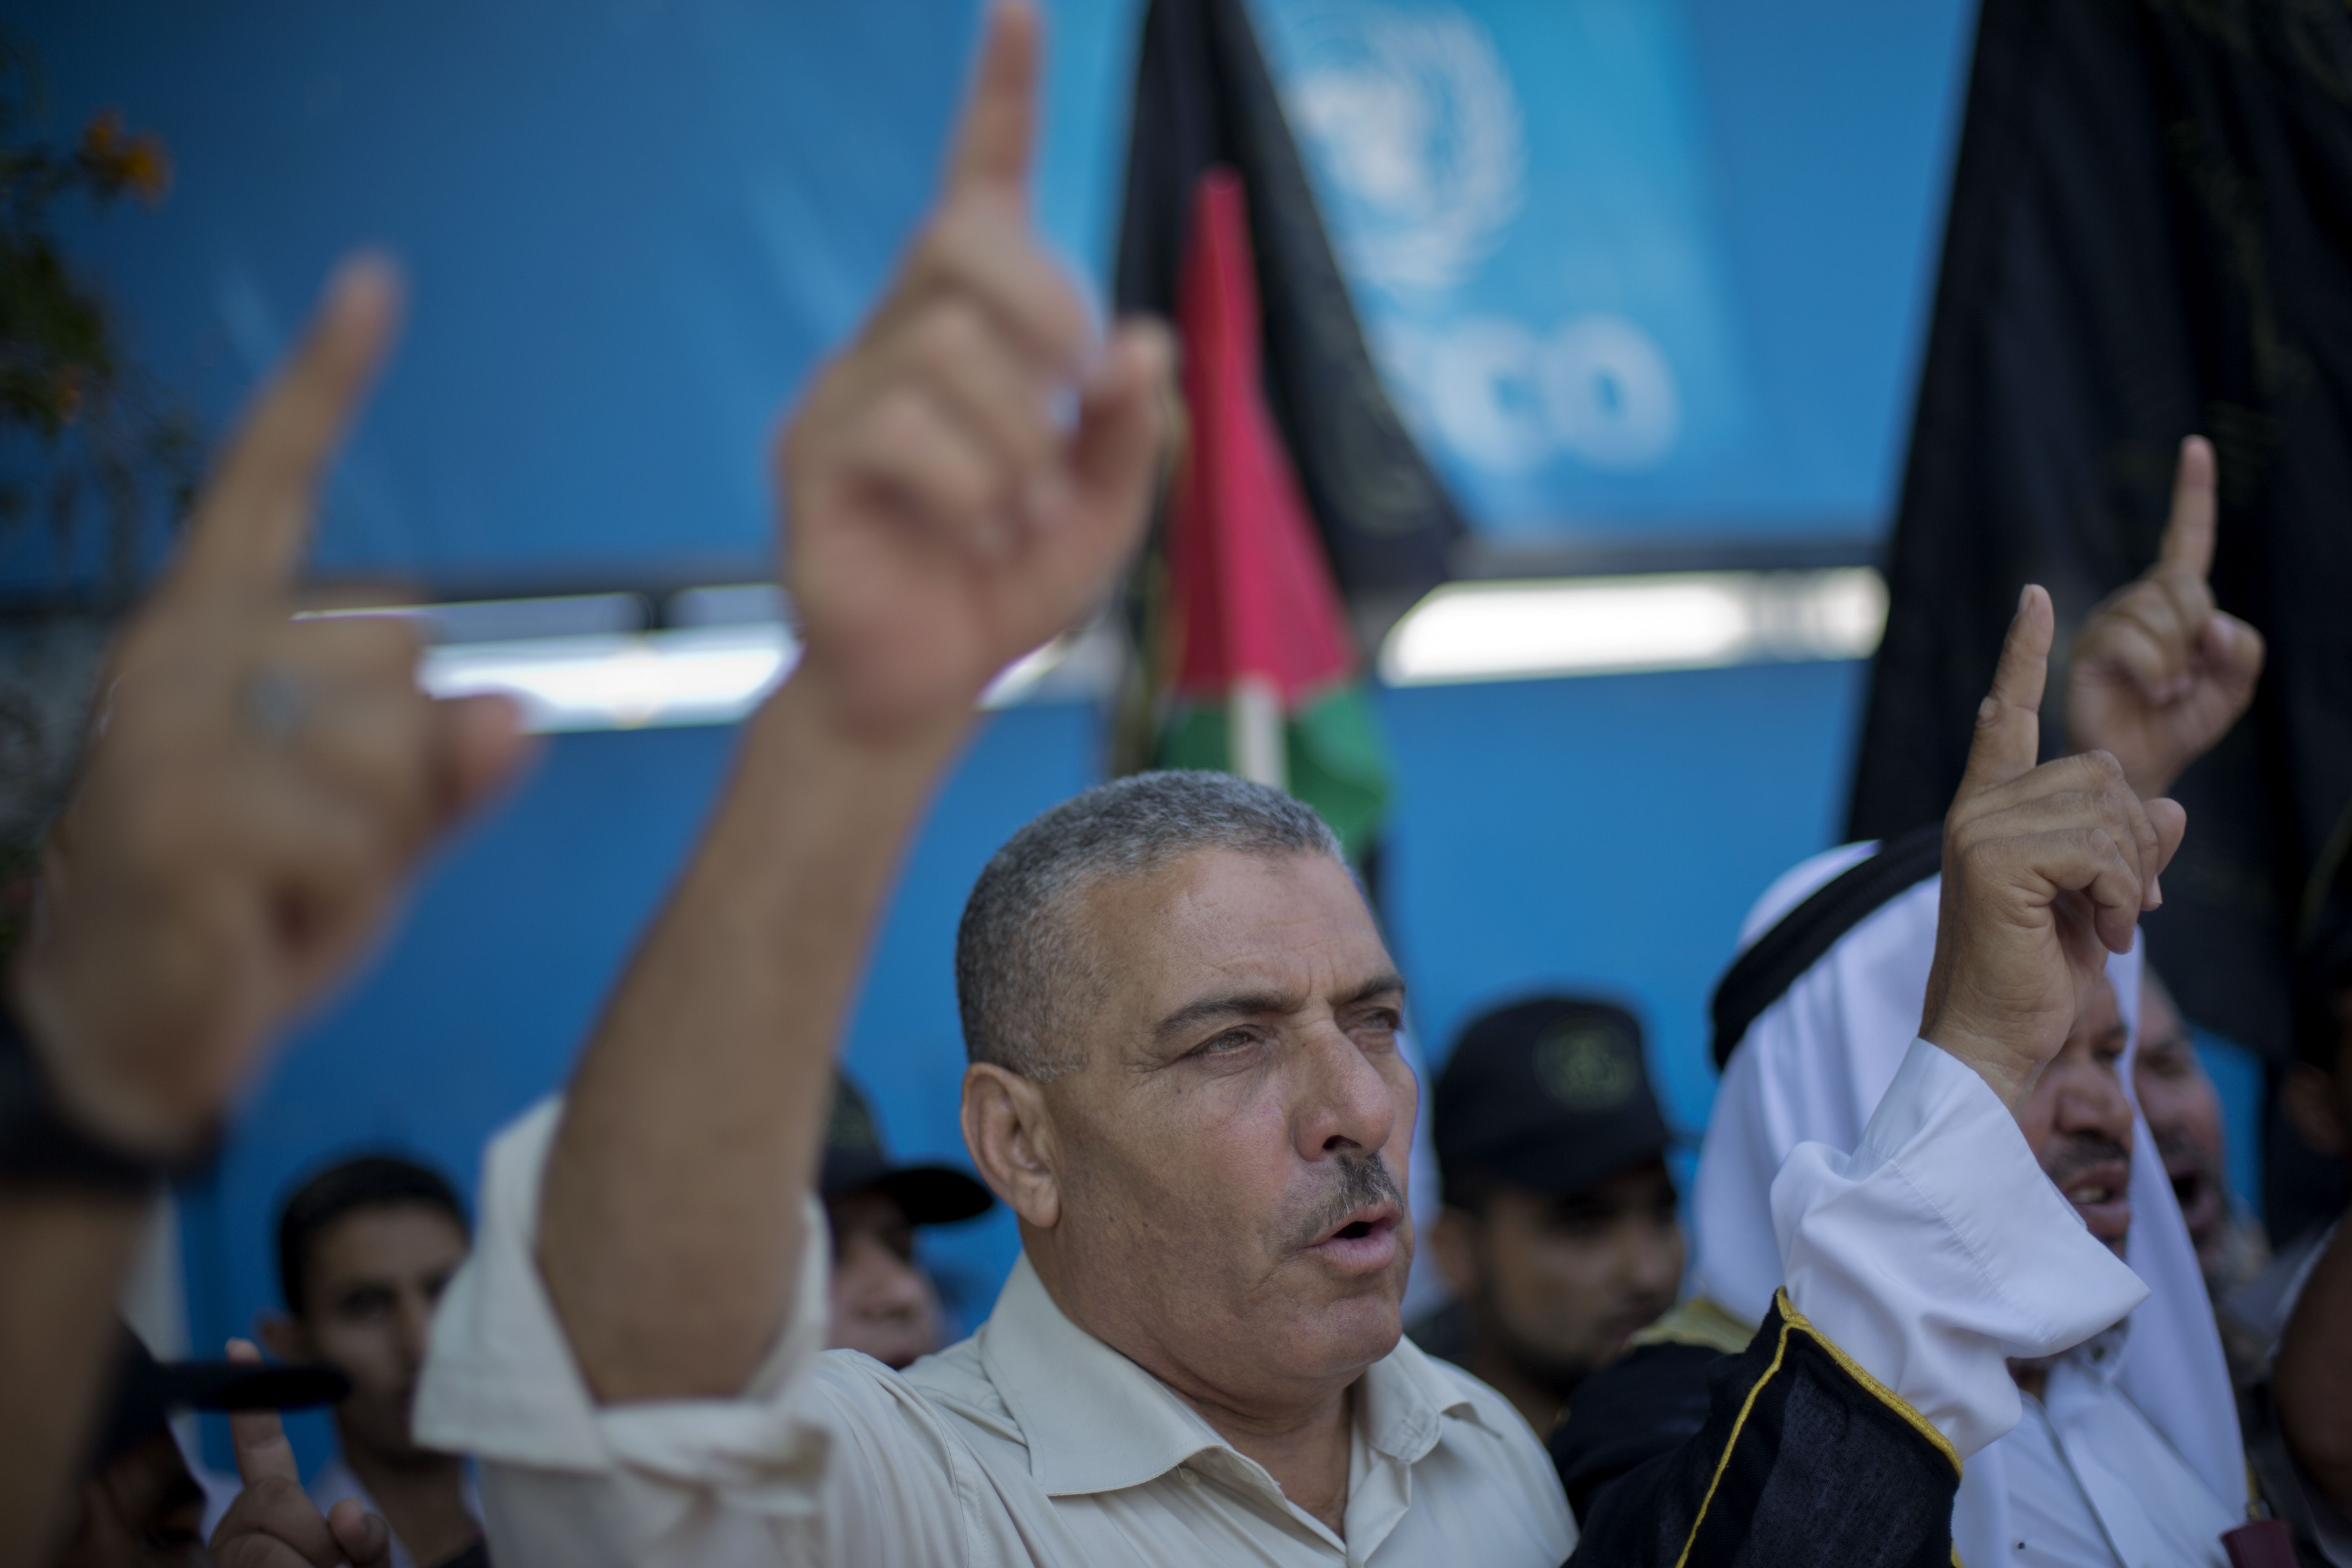 Palestinian protestors shout slogans next to the UNESCO headquarters in Gaza City during a demonstration against the Israeli government's plans to relocate Bedouins in the Negev desert, on July 17, 2013.  (AFP Photo)